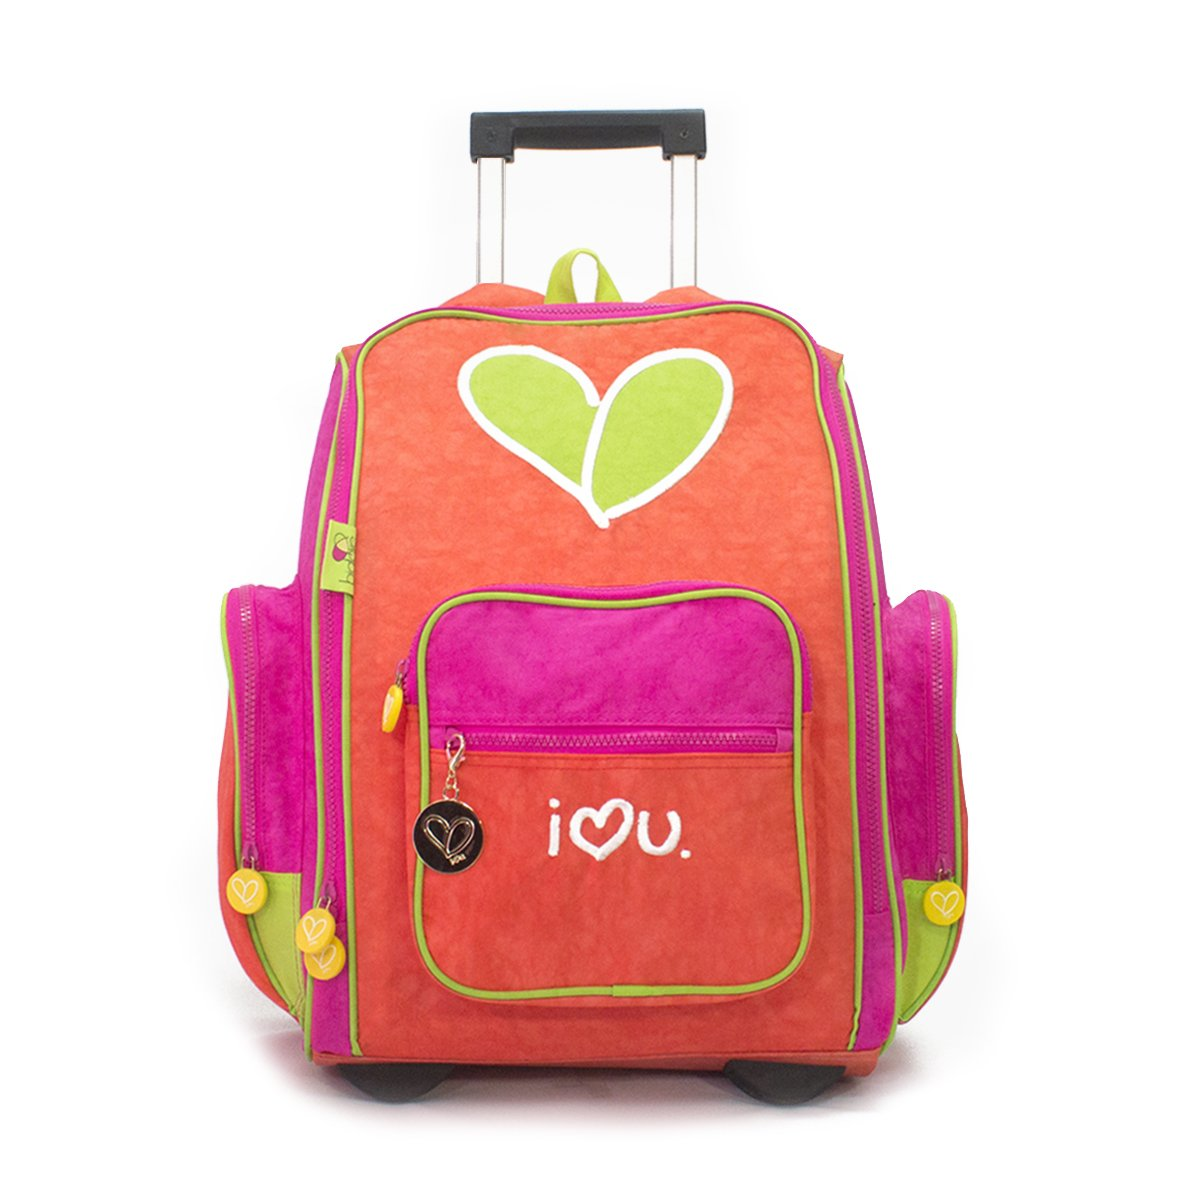 Biglove Backpack with Trolley Bag, Love